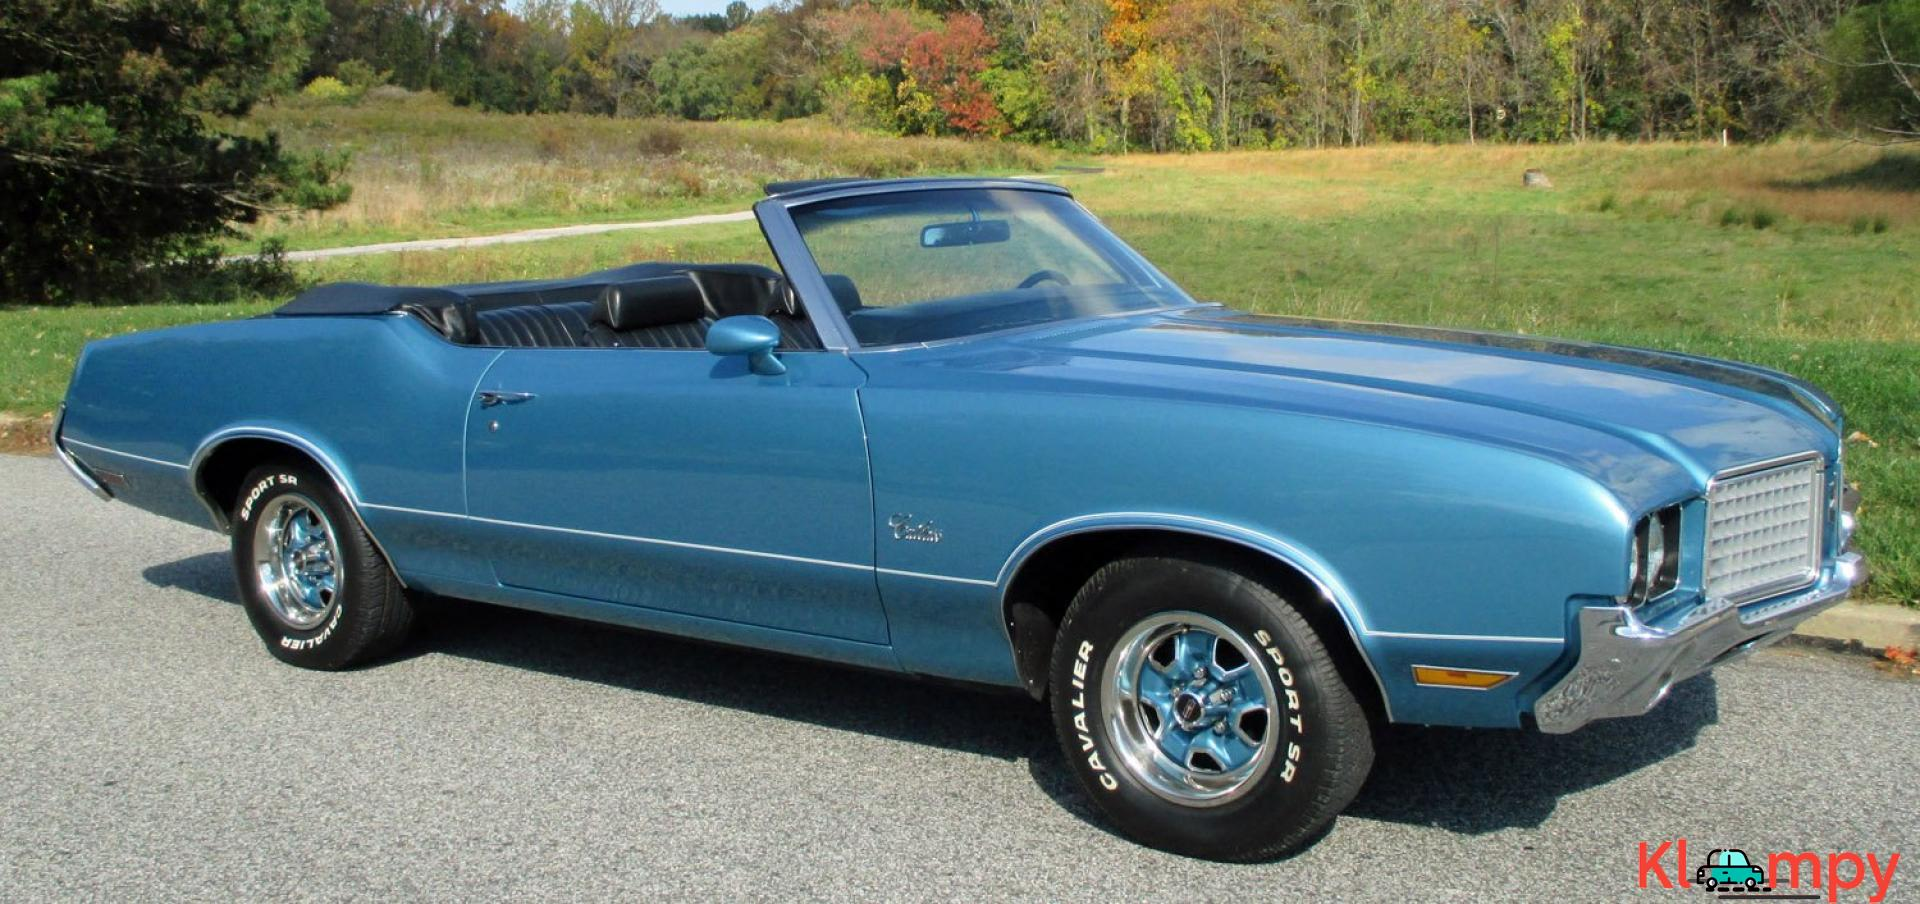 1972 Oldsmobile Cutlass Supreme 350 Convertible V8 - 4/19